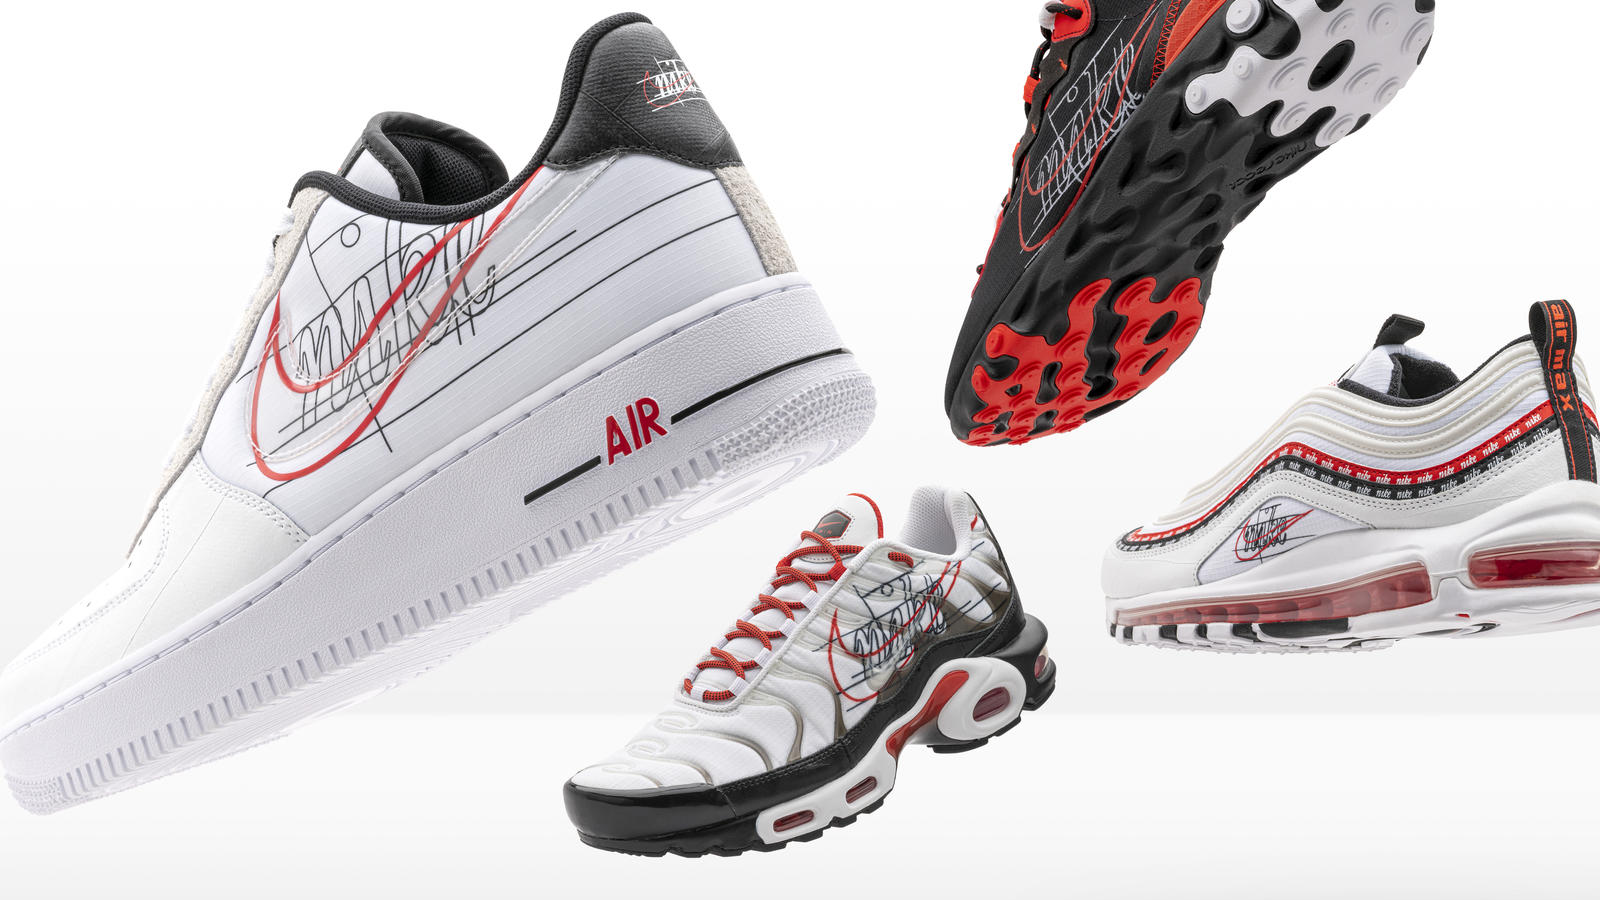 Nike and Footlocker Evolution of Swoosh Air Force 1, Air Max 97, Air Max Plus and React Element 55. 2